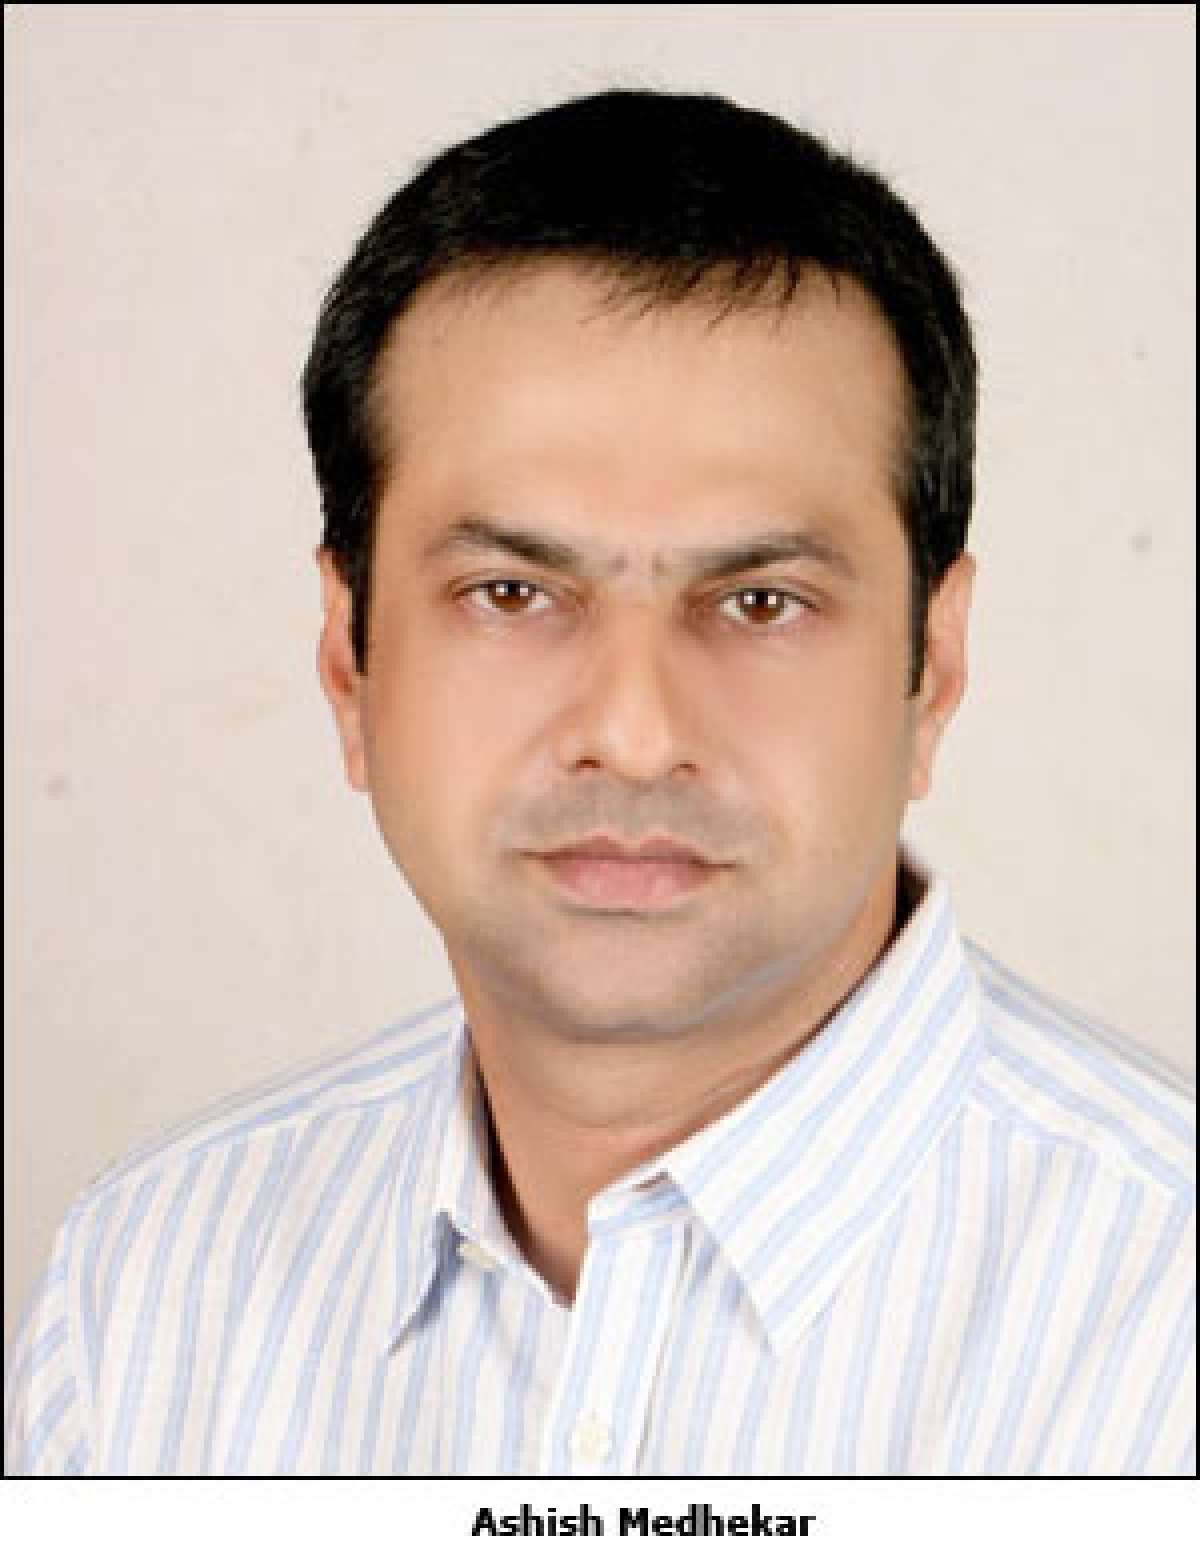 Ashish Medhekar appointed executive director at Triton Mumbai